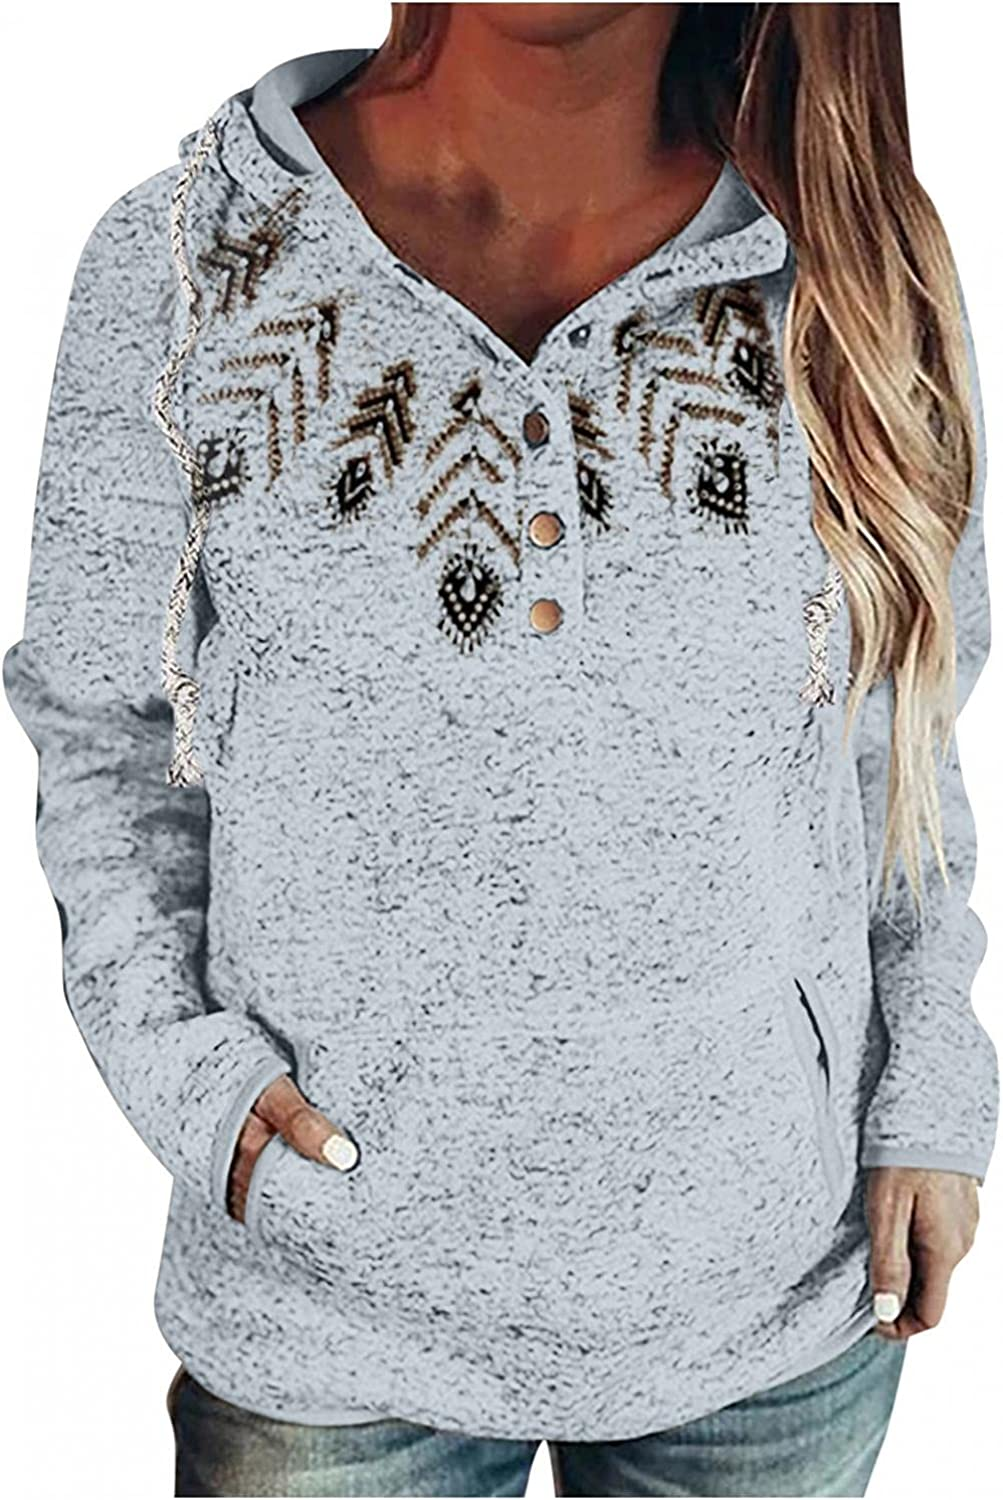 felwors Sweatshirt for Women, Womens Hoodies Button Collar Drawstring Long Sleeve Casual Pullover Tops with Pockets